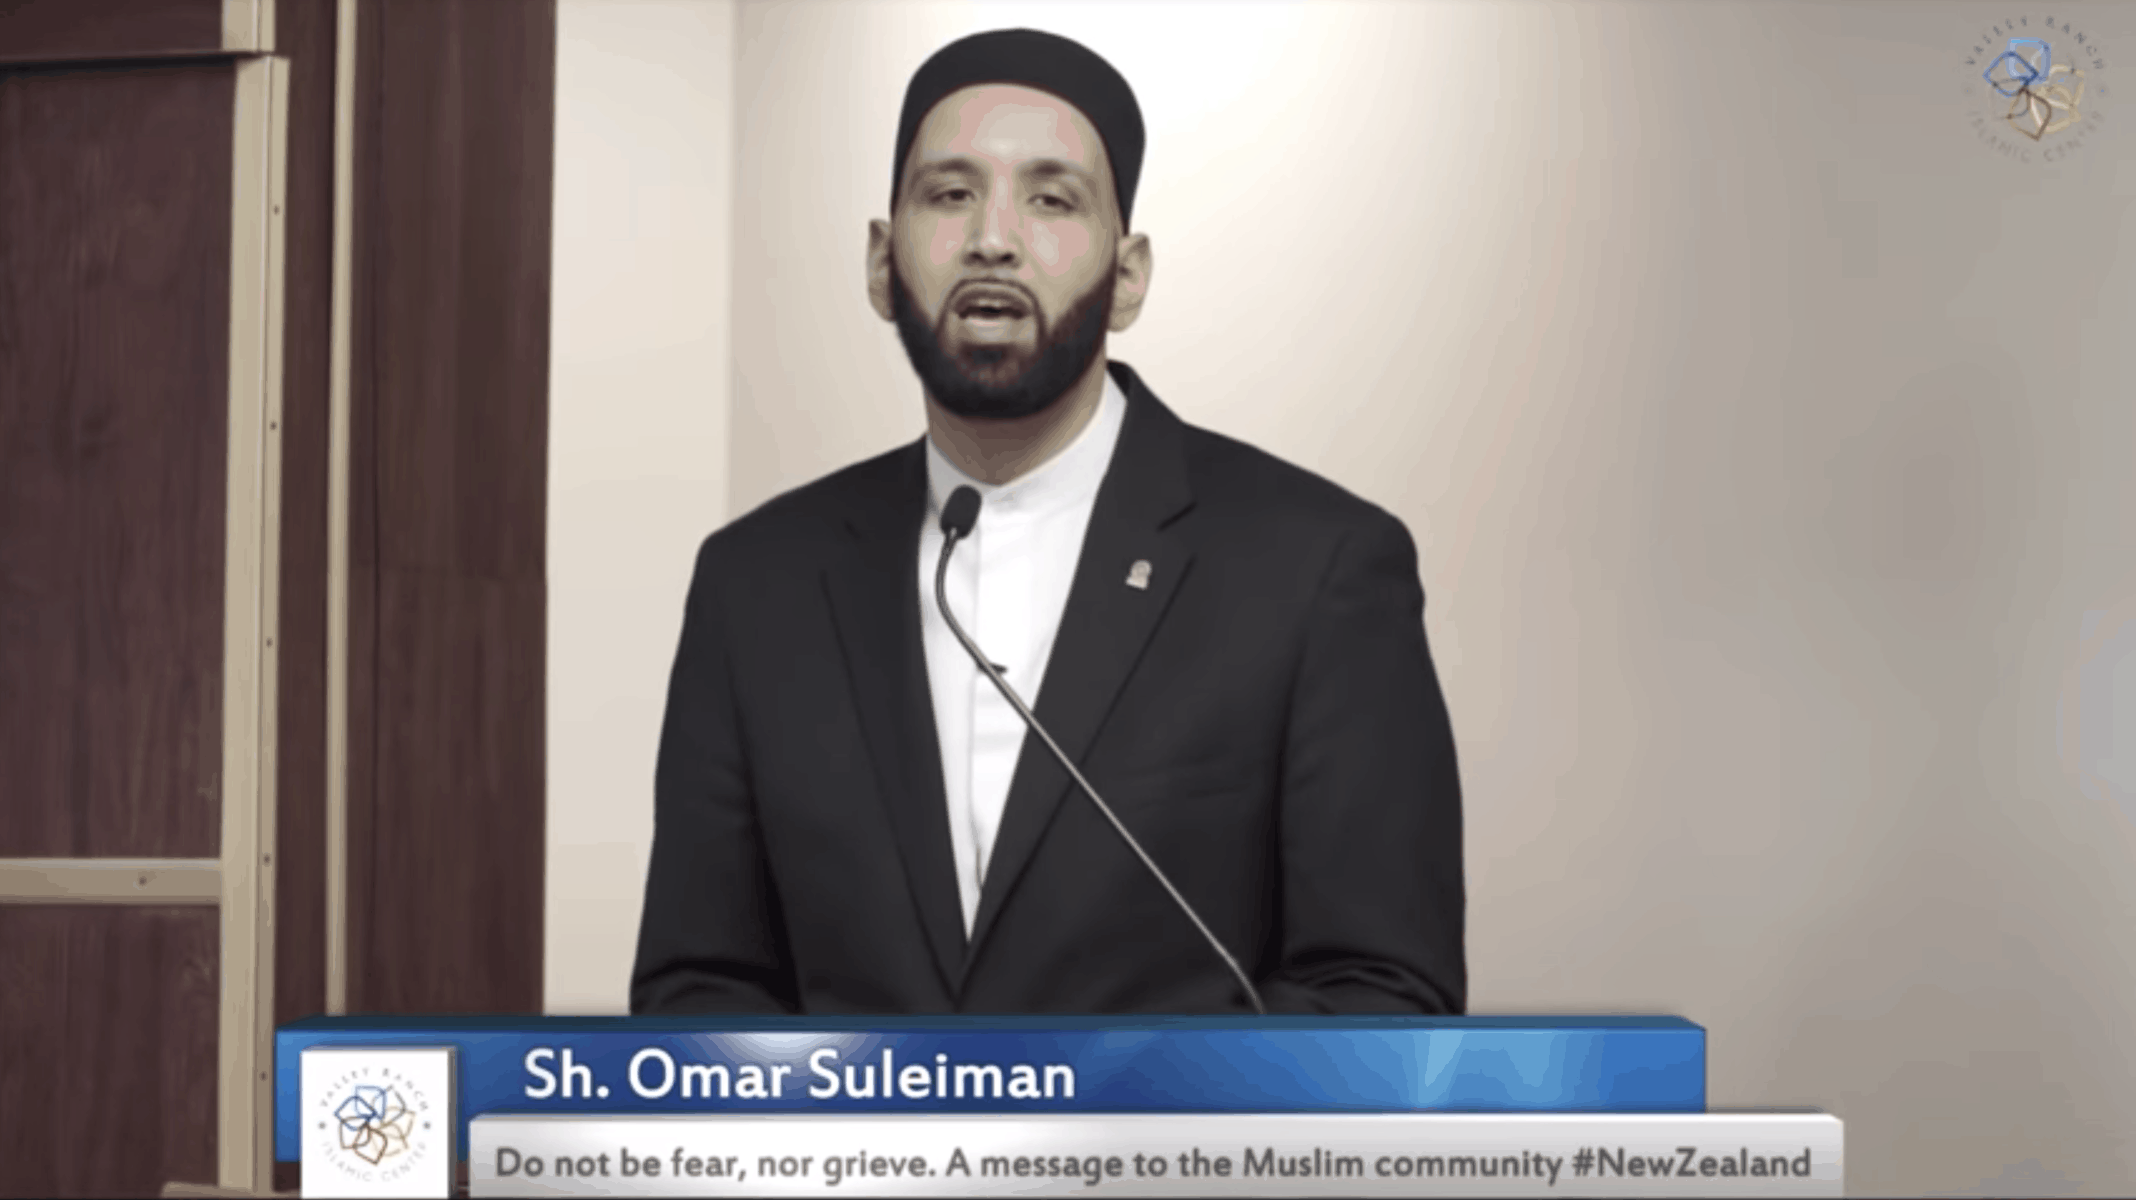 Omar Suleiman – Do not be fear, nor grieve. A message to the Muslim community #NewZealand